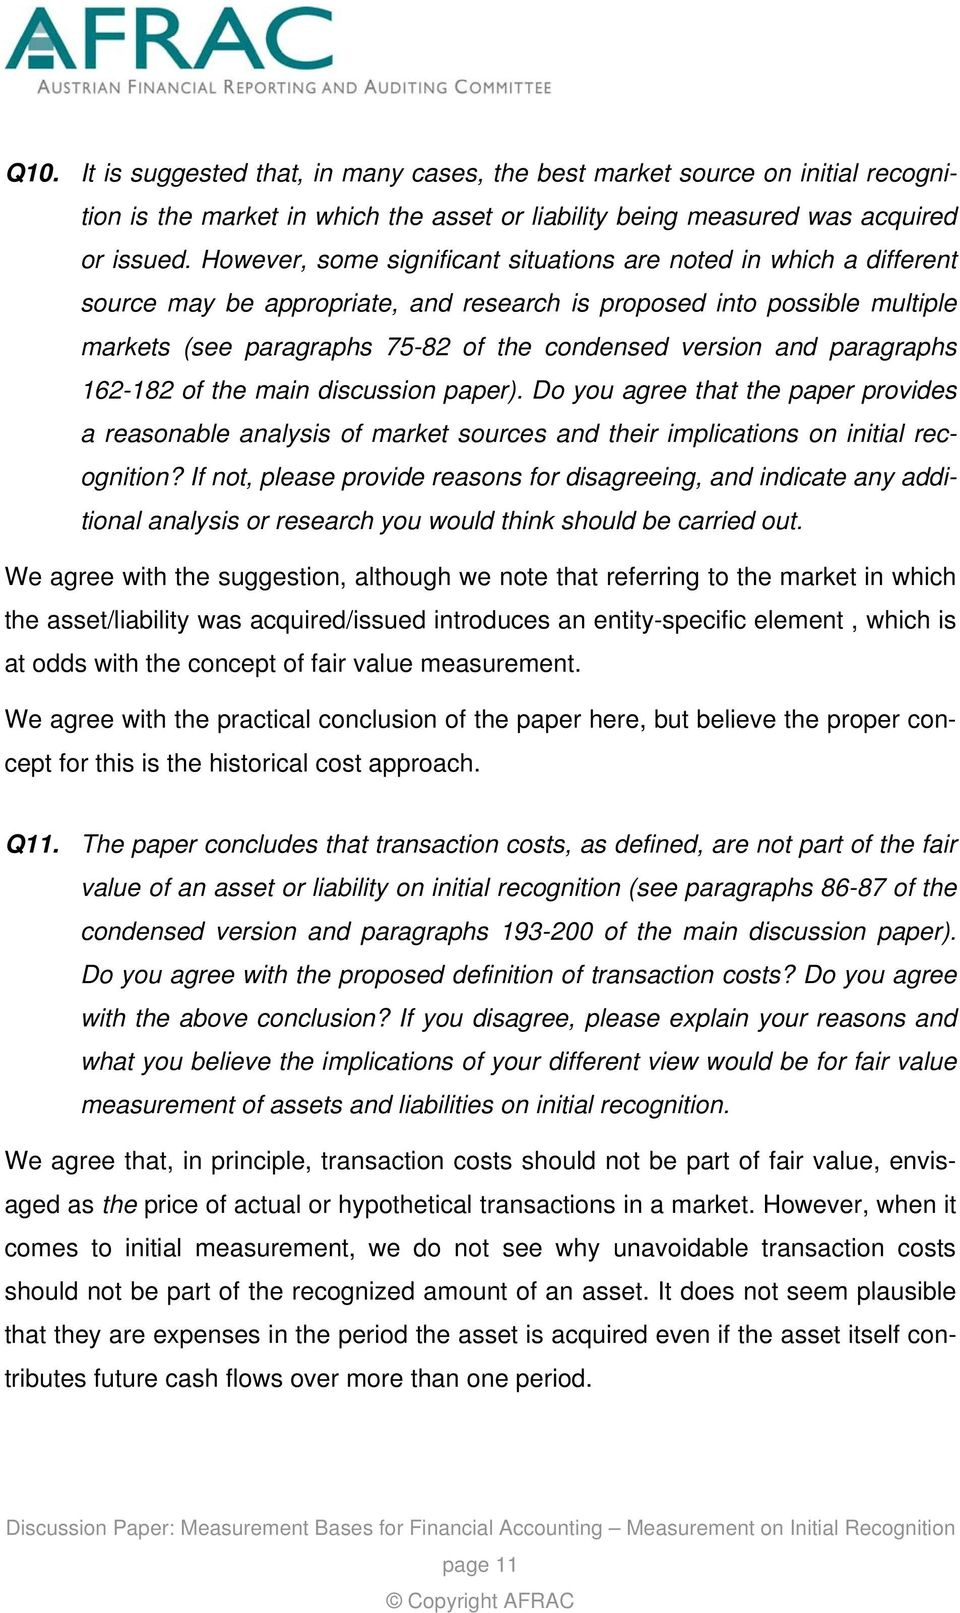 and paragraphs 162-182 of the main discussion paper). Do you agree that the paper provides a reasonable analysis of market sources and their implications on initial recognition?